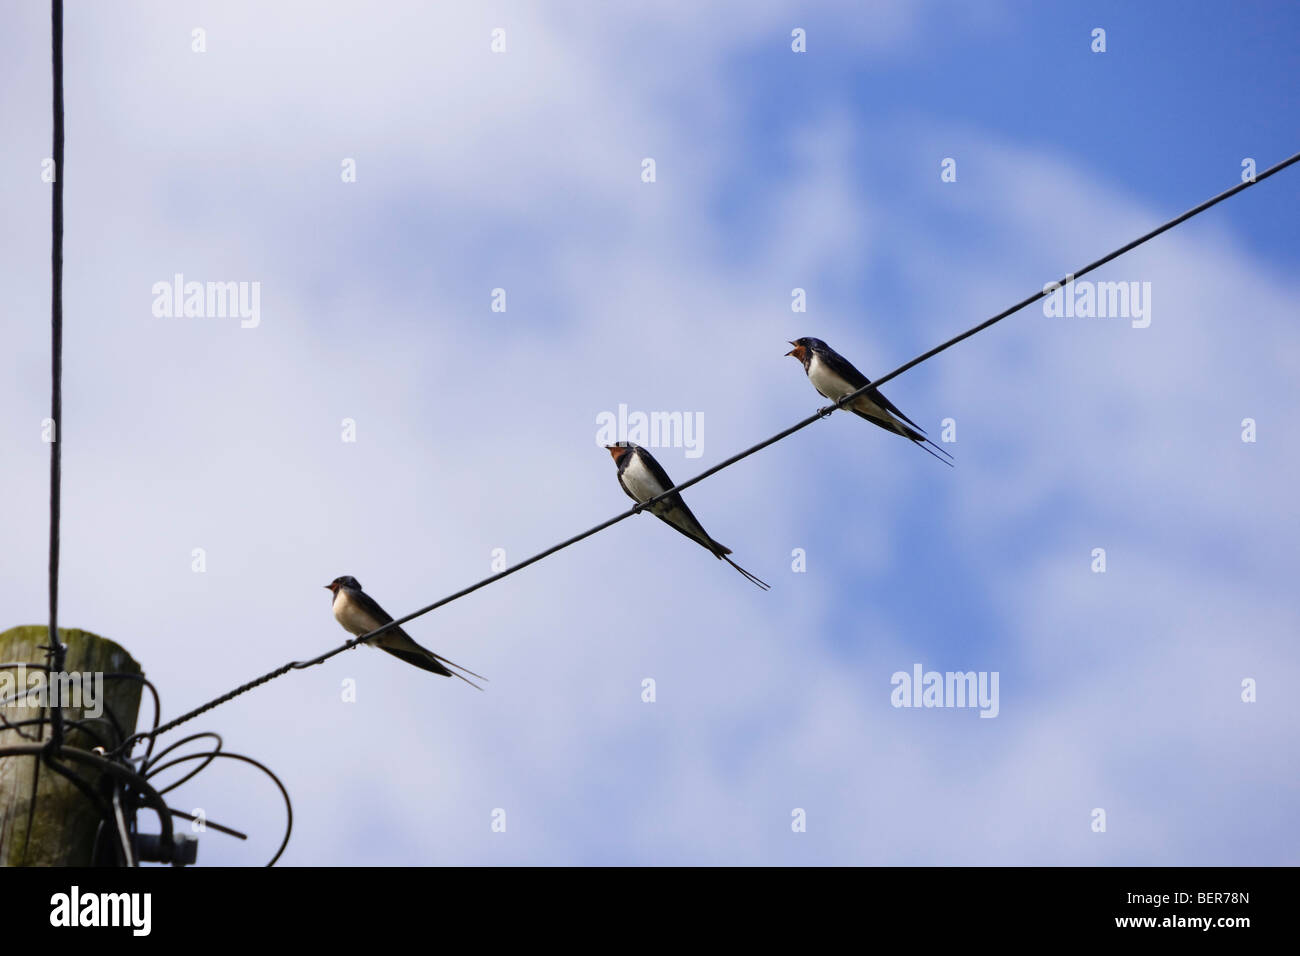 Swifts on a wire - Stock Image